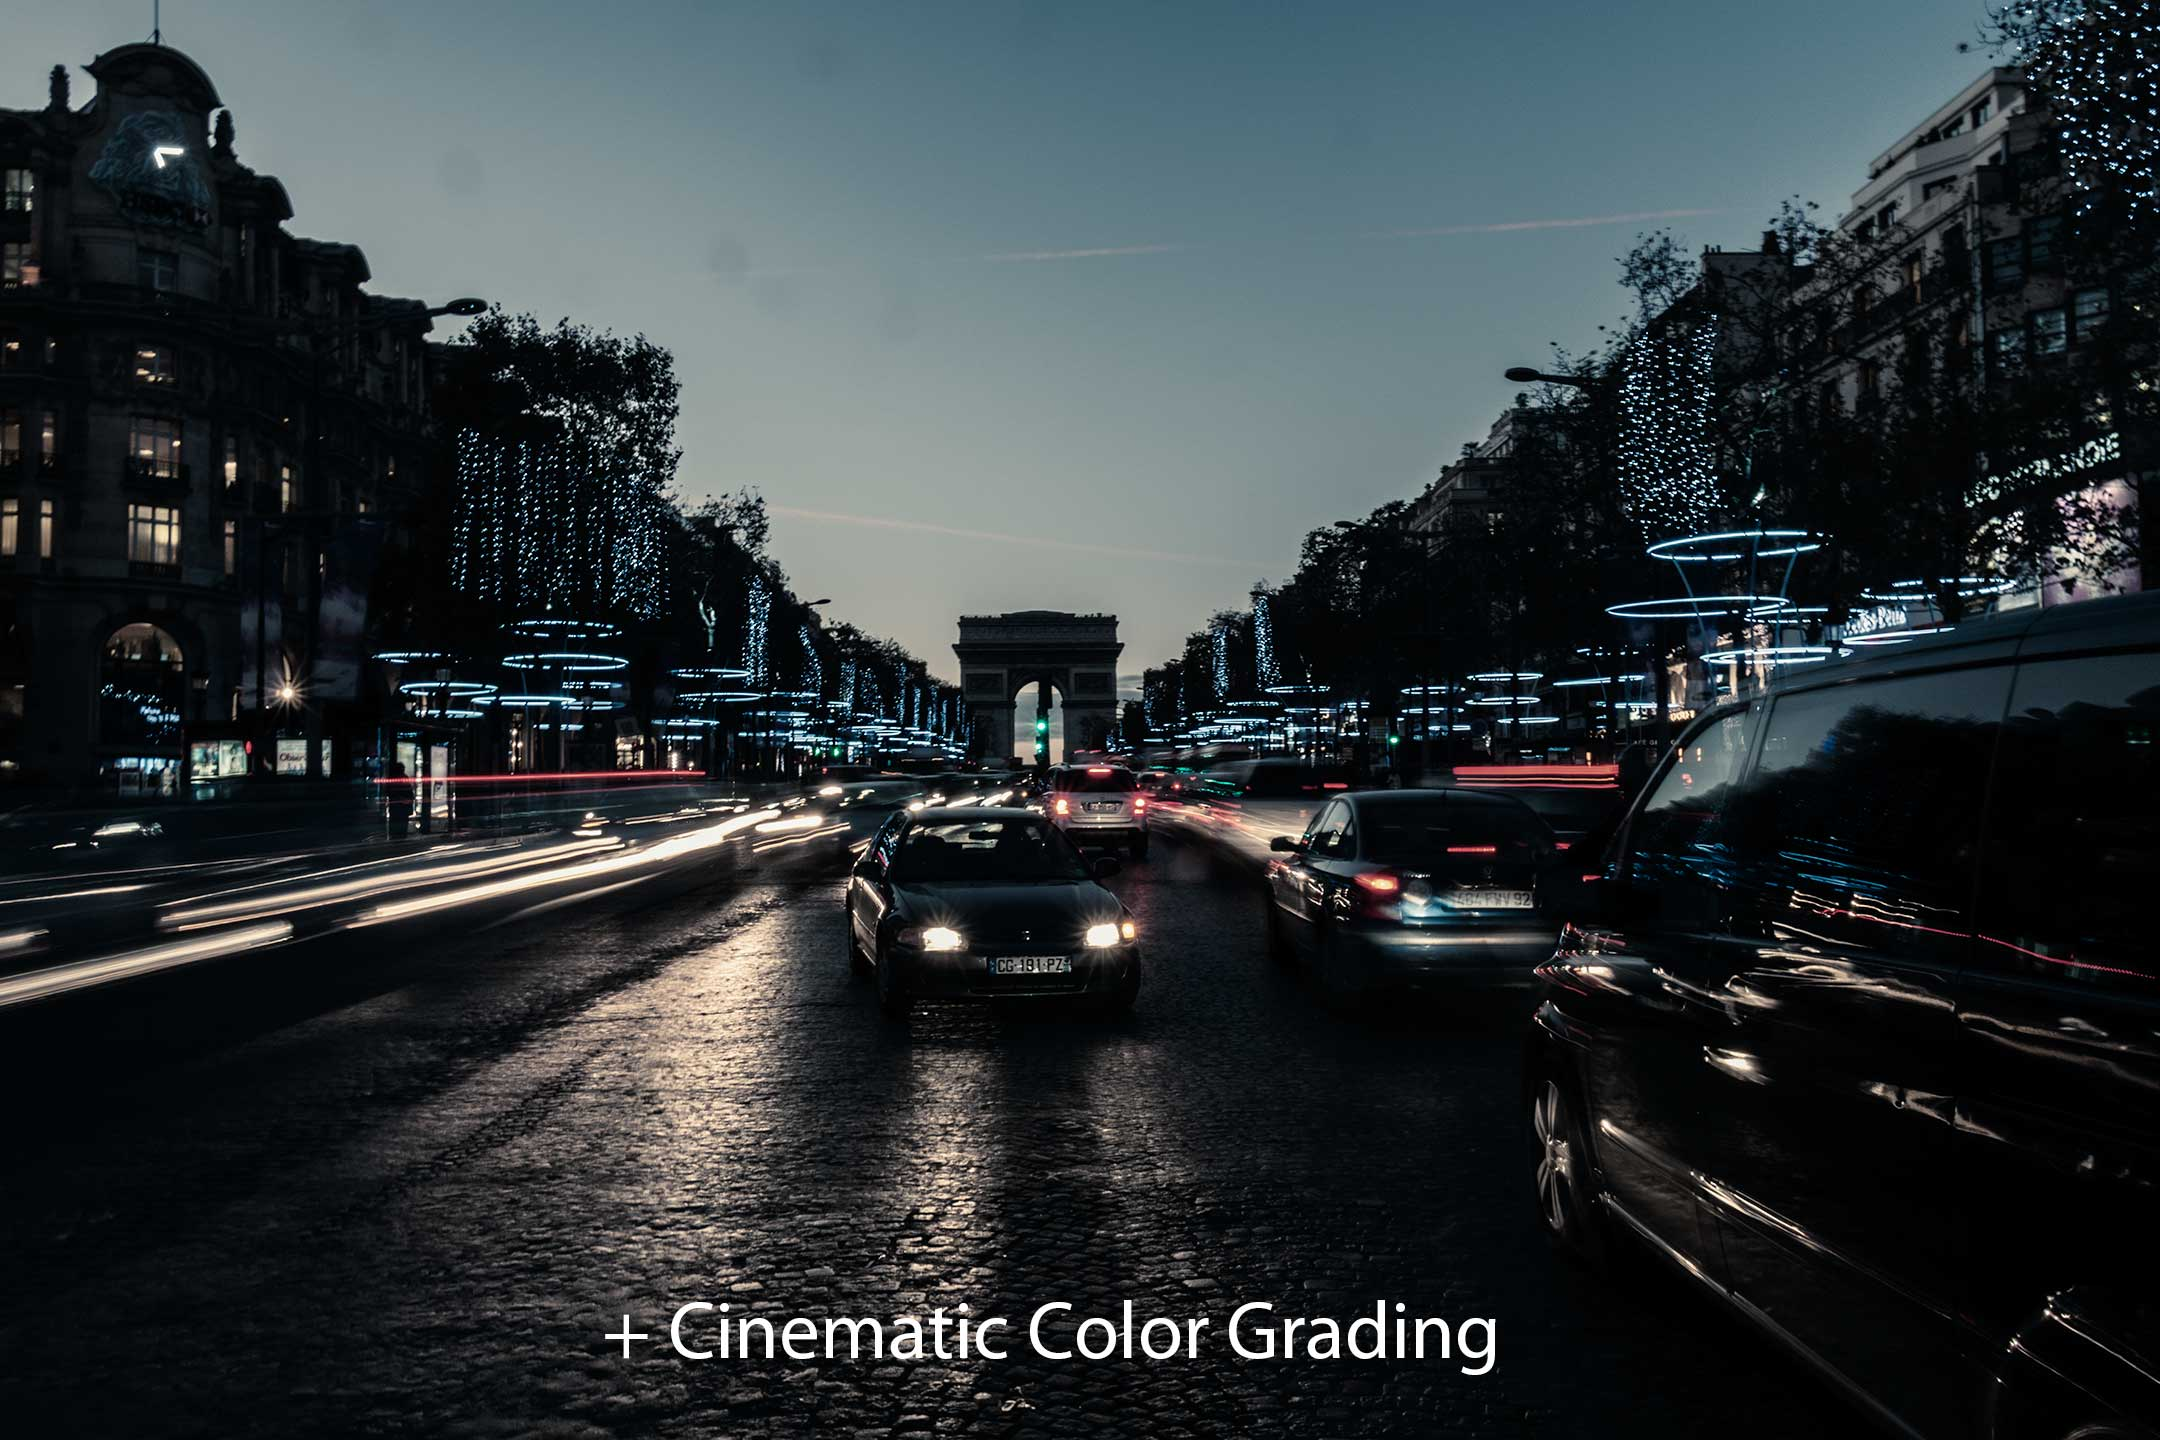 Cinematic Color Grading 1.jpg